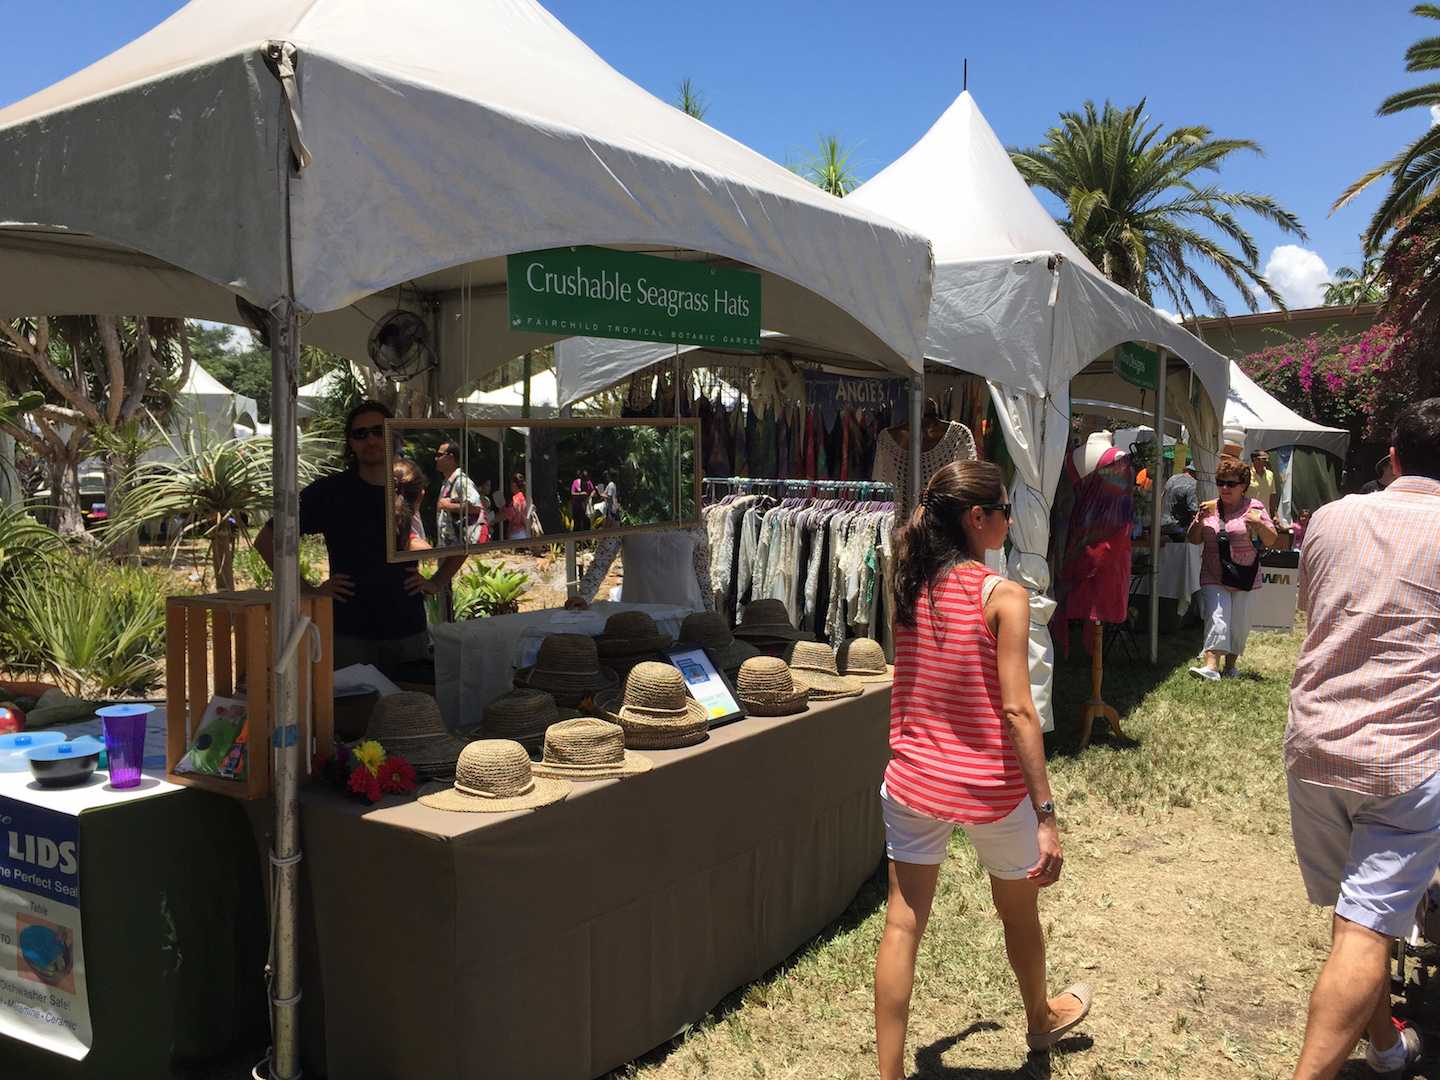 One of the non-mango vendors sold crushable seagrass hats to keep visitors cool.